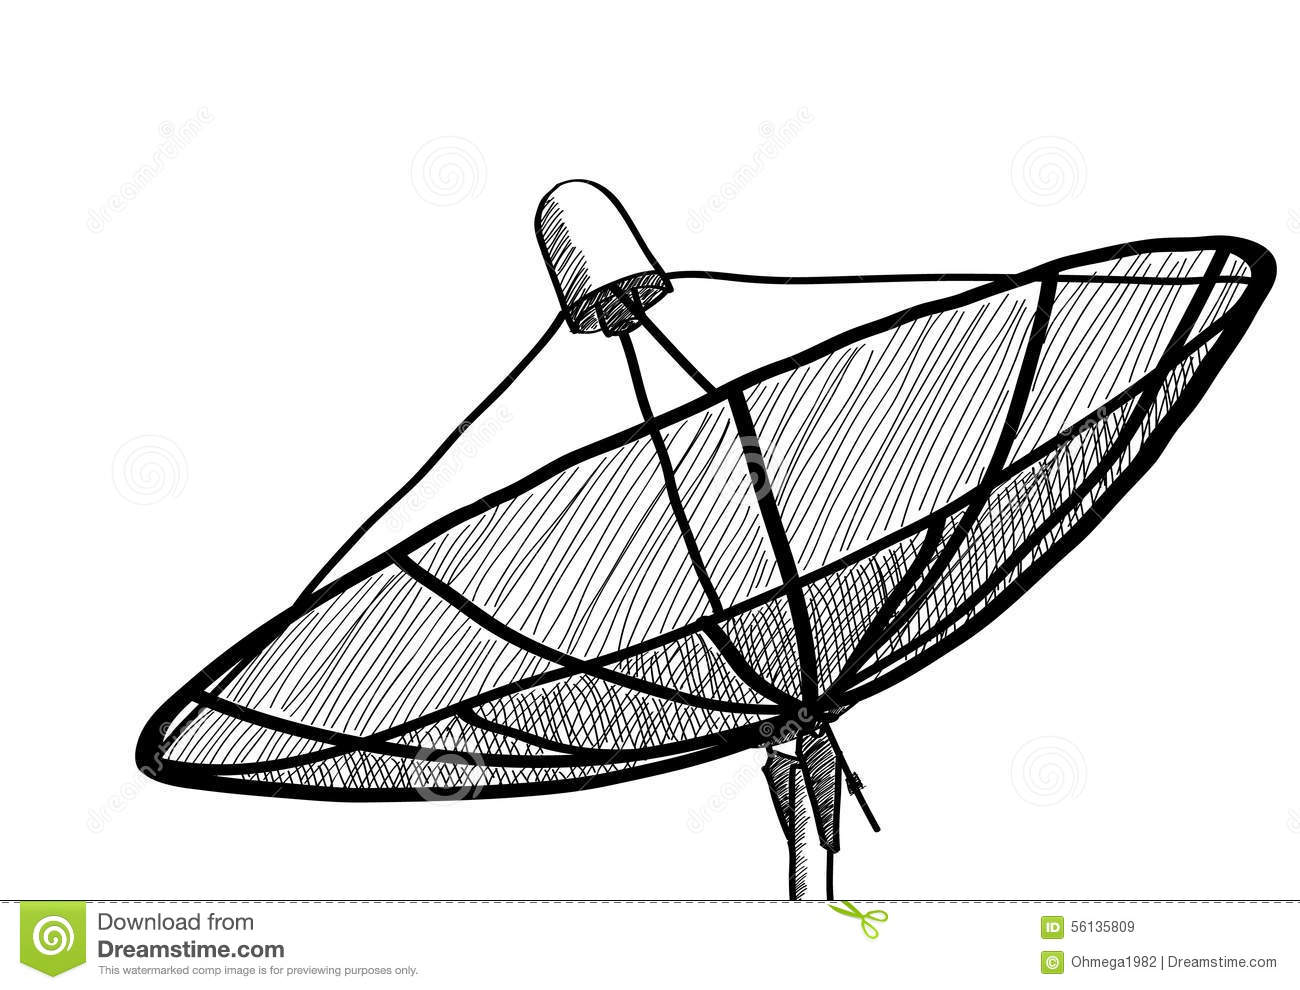 an introduction to the satellite dish industry Significant is the point at which products move from the introductory to the  growth phase   of the plc concept by the home television satellite dish  industry.